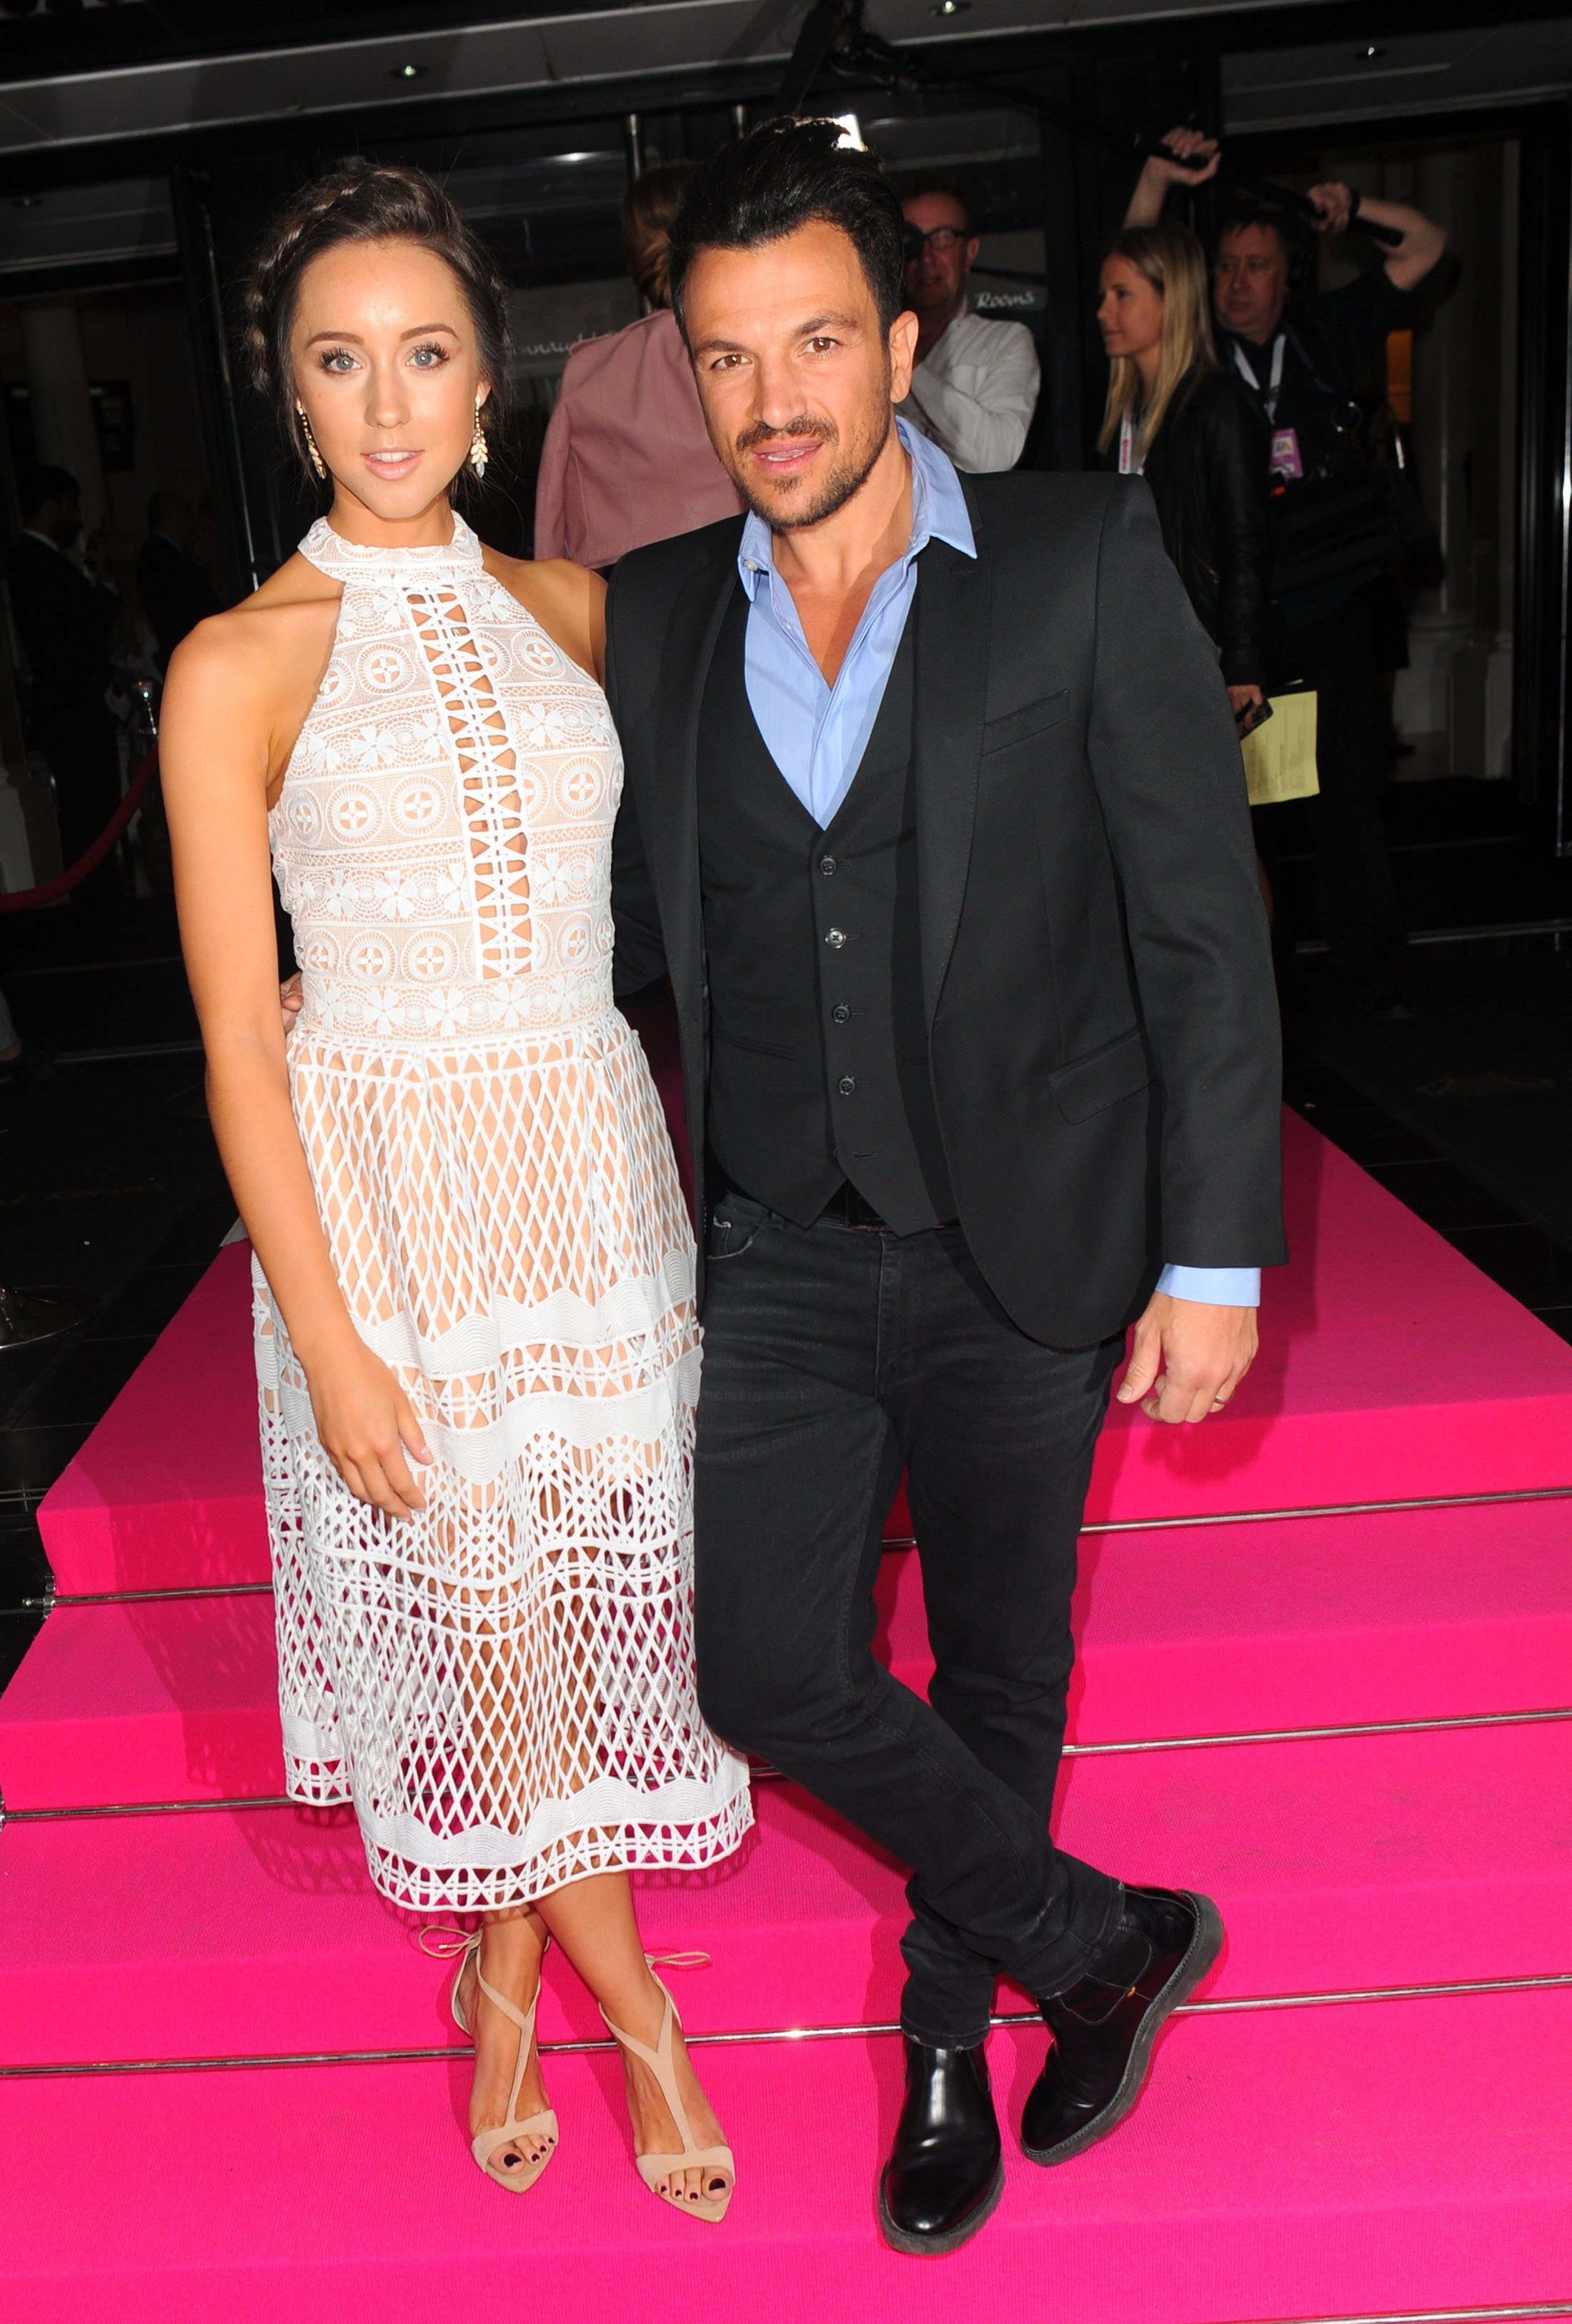 Picture Shows: Peter Andre, Emily MacDonagh May 17, 2016 Peter Andre and Emily MacDonagh arrive at The Connaught Rooms for the Lorraine High Street Fashion Awards in London, England. Non-Exclusive WORLDWIDE RIGHTS Pictures by : FameFlynet UK © 2016 Tel : +44 (0)20 3551 5049 Email : info@fameflynet.uk.com